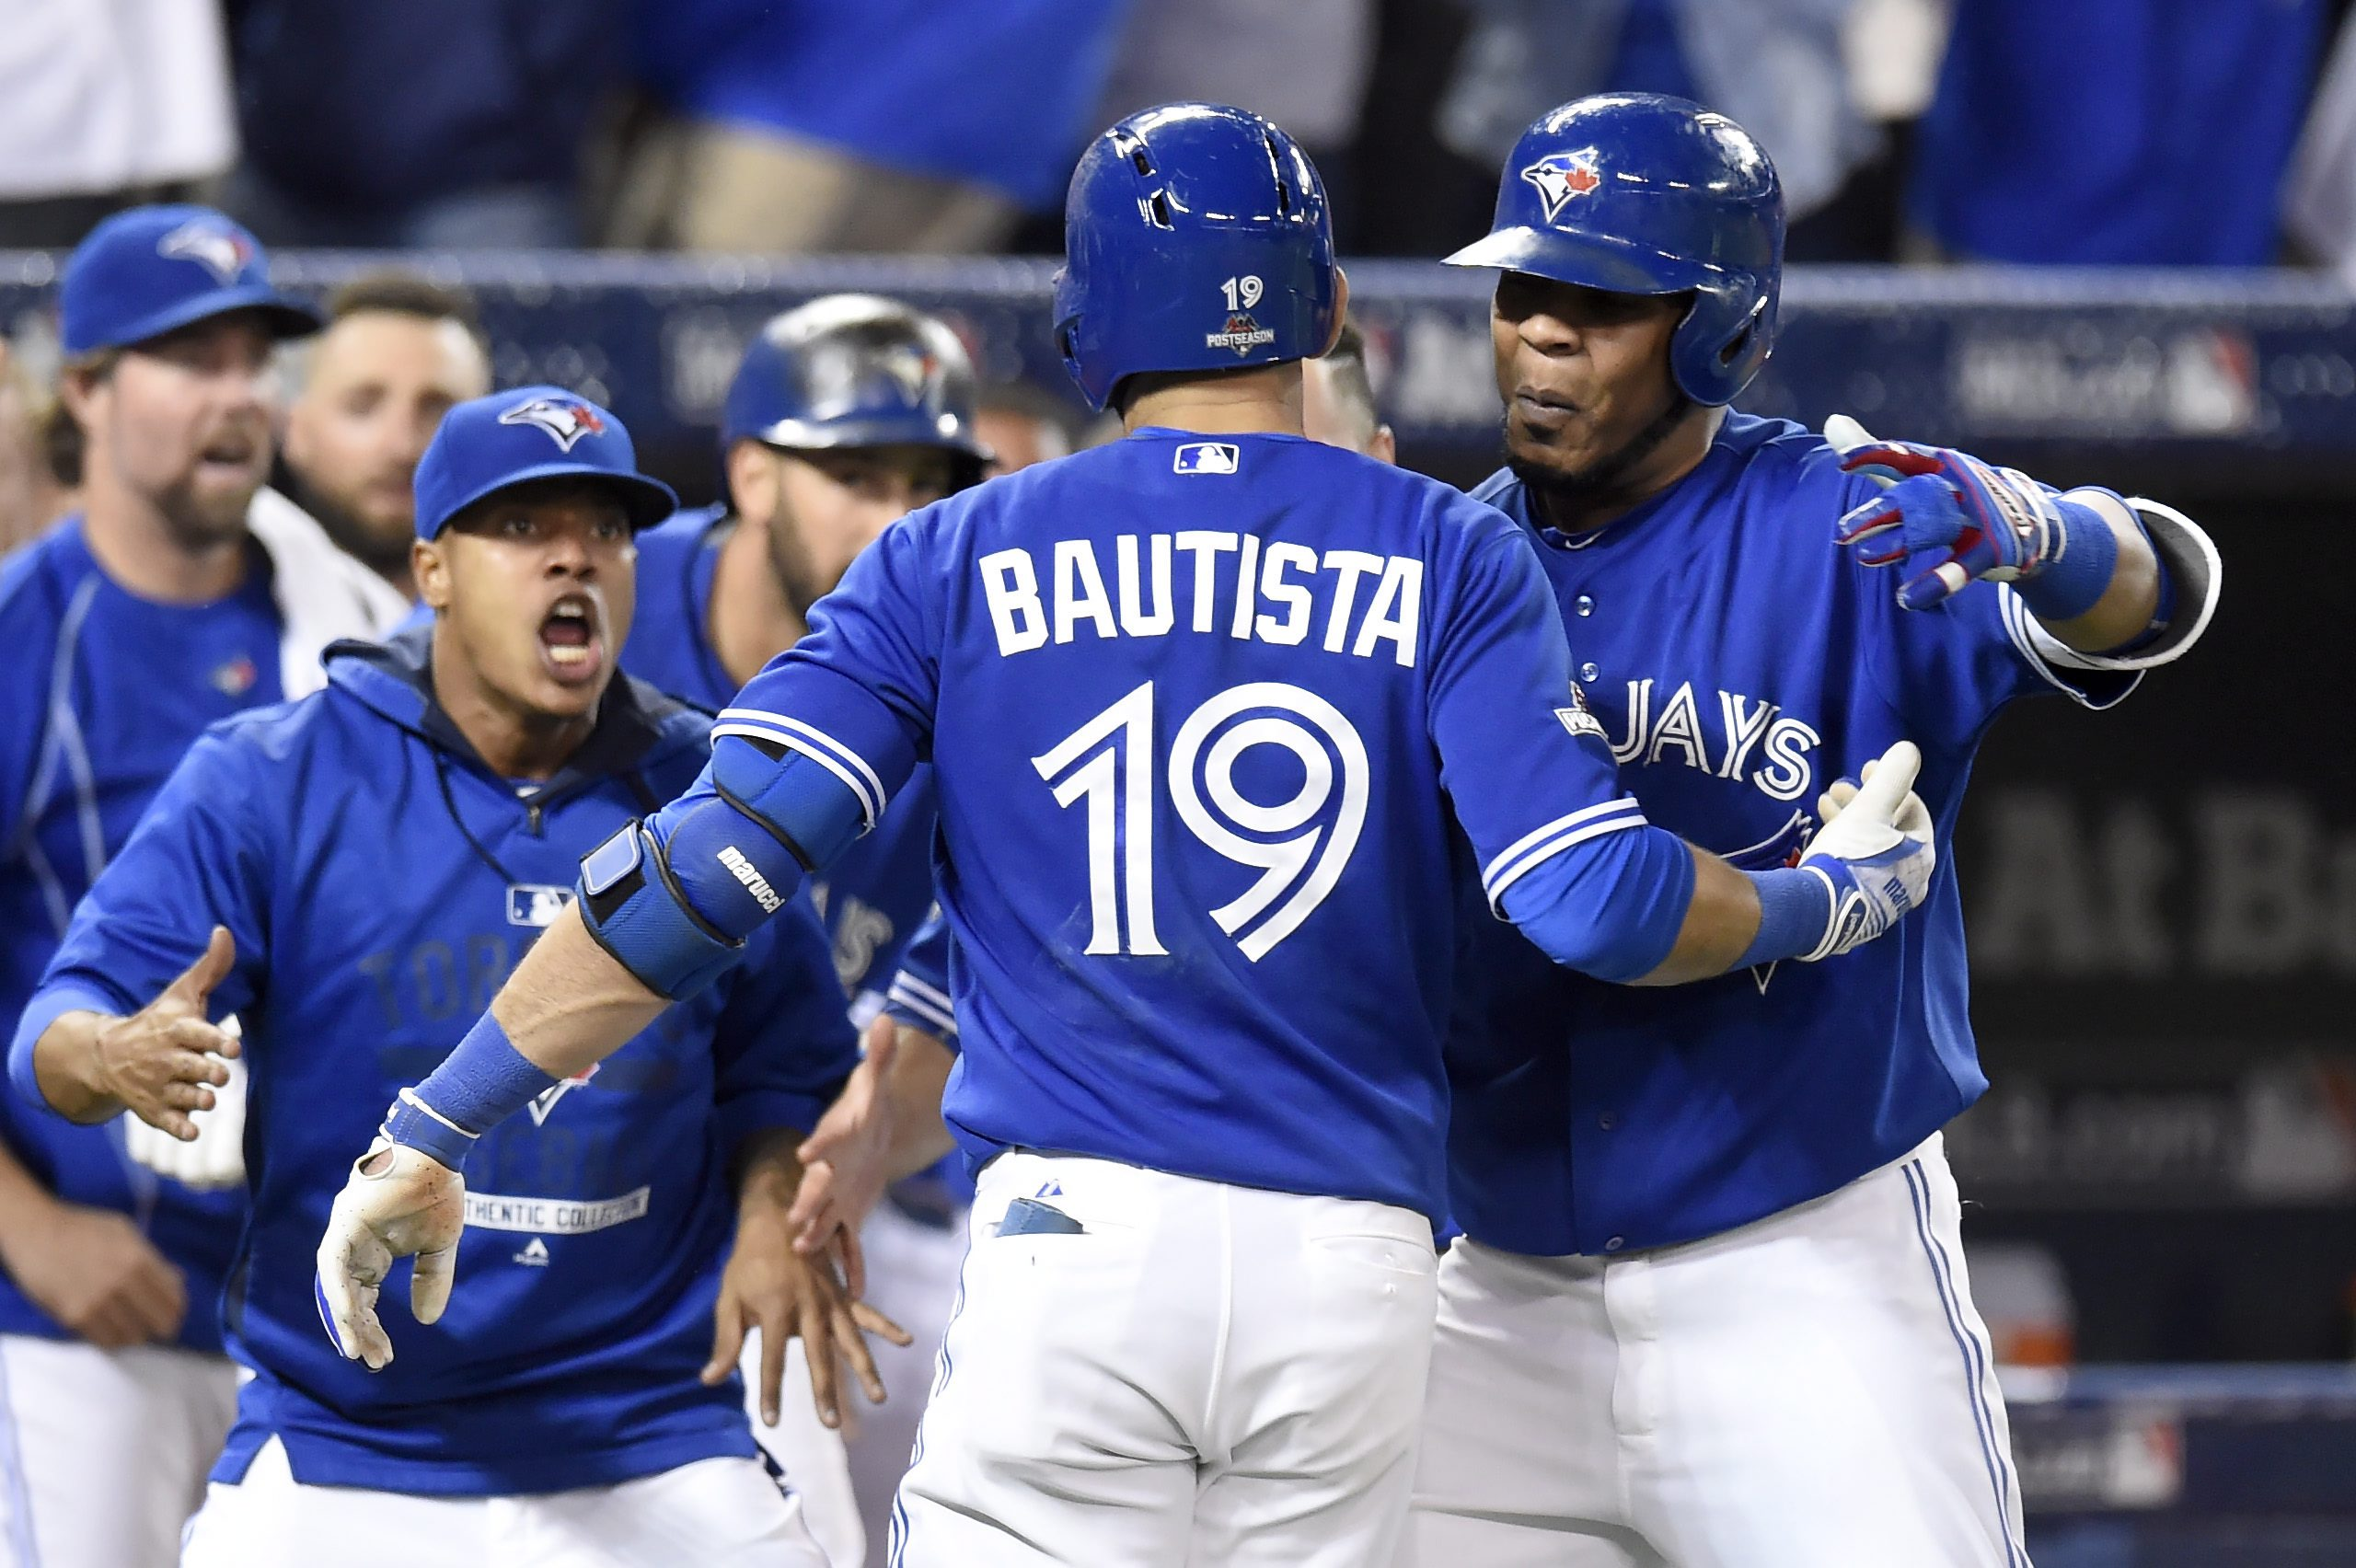 bautista punched in the face